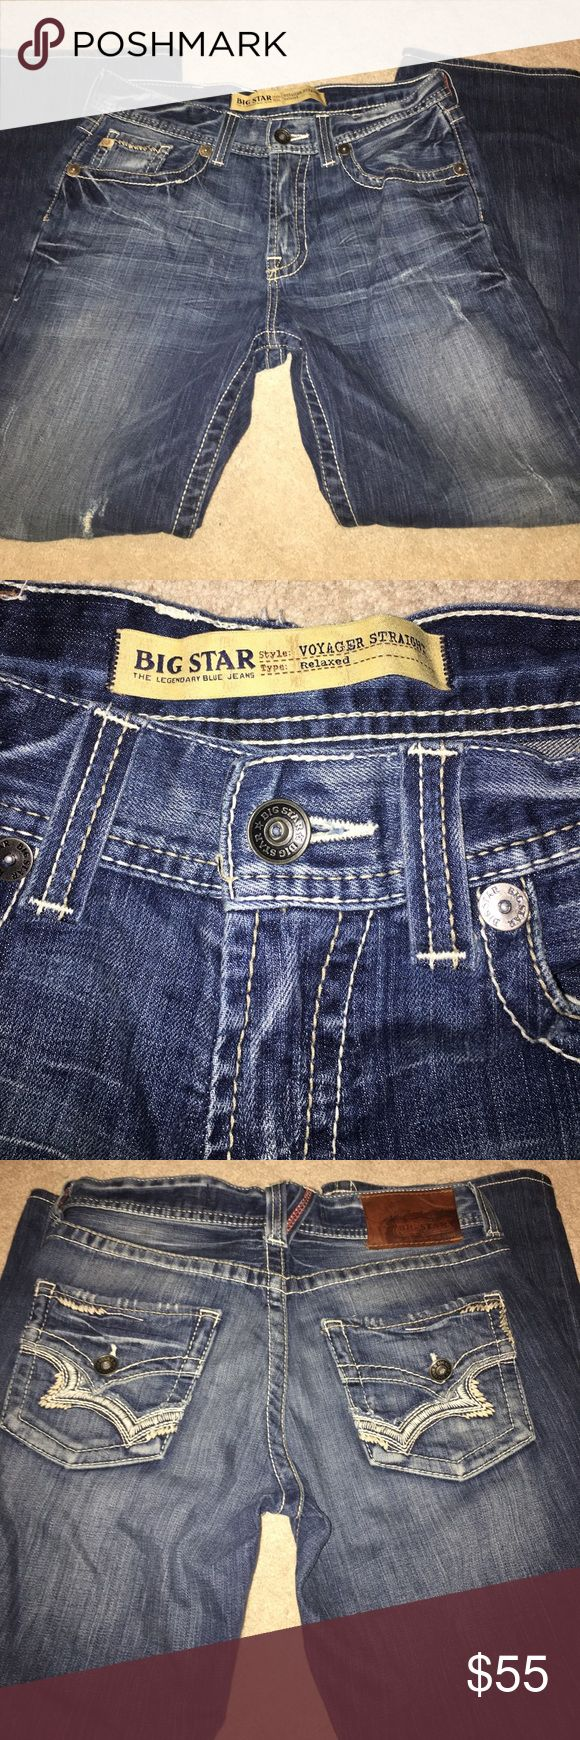 Big Star Voyager Straight Relaxed Jeans 31 Long Big Star Voyager Straight Relaxed Bootcut Jeans 31 Long. Brand new without tags. Big Star Jeans Bootcut